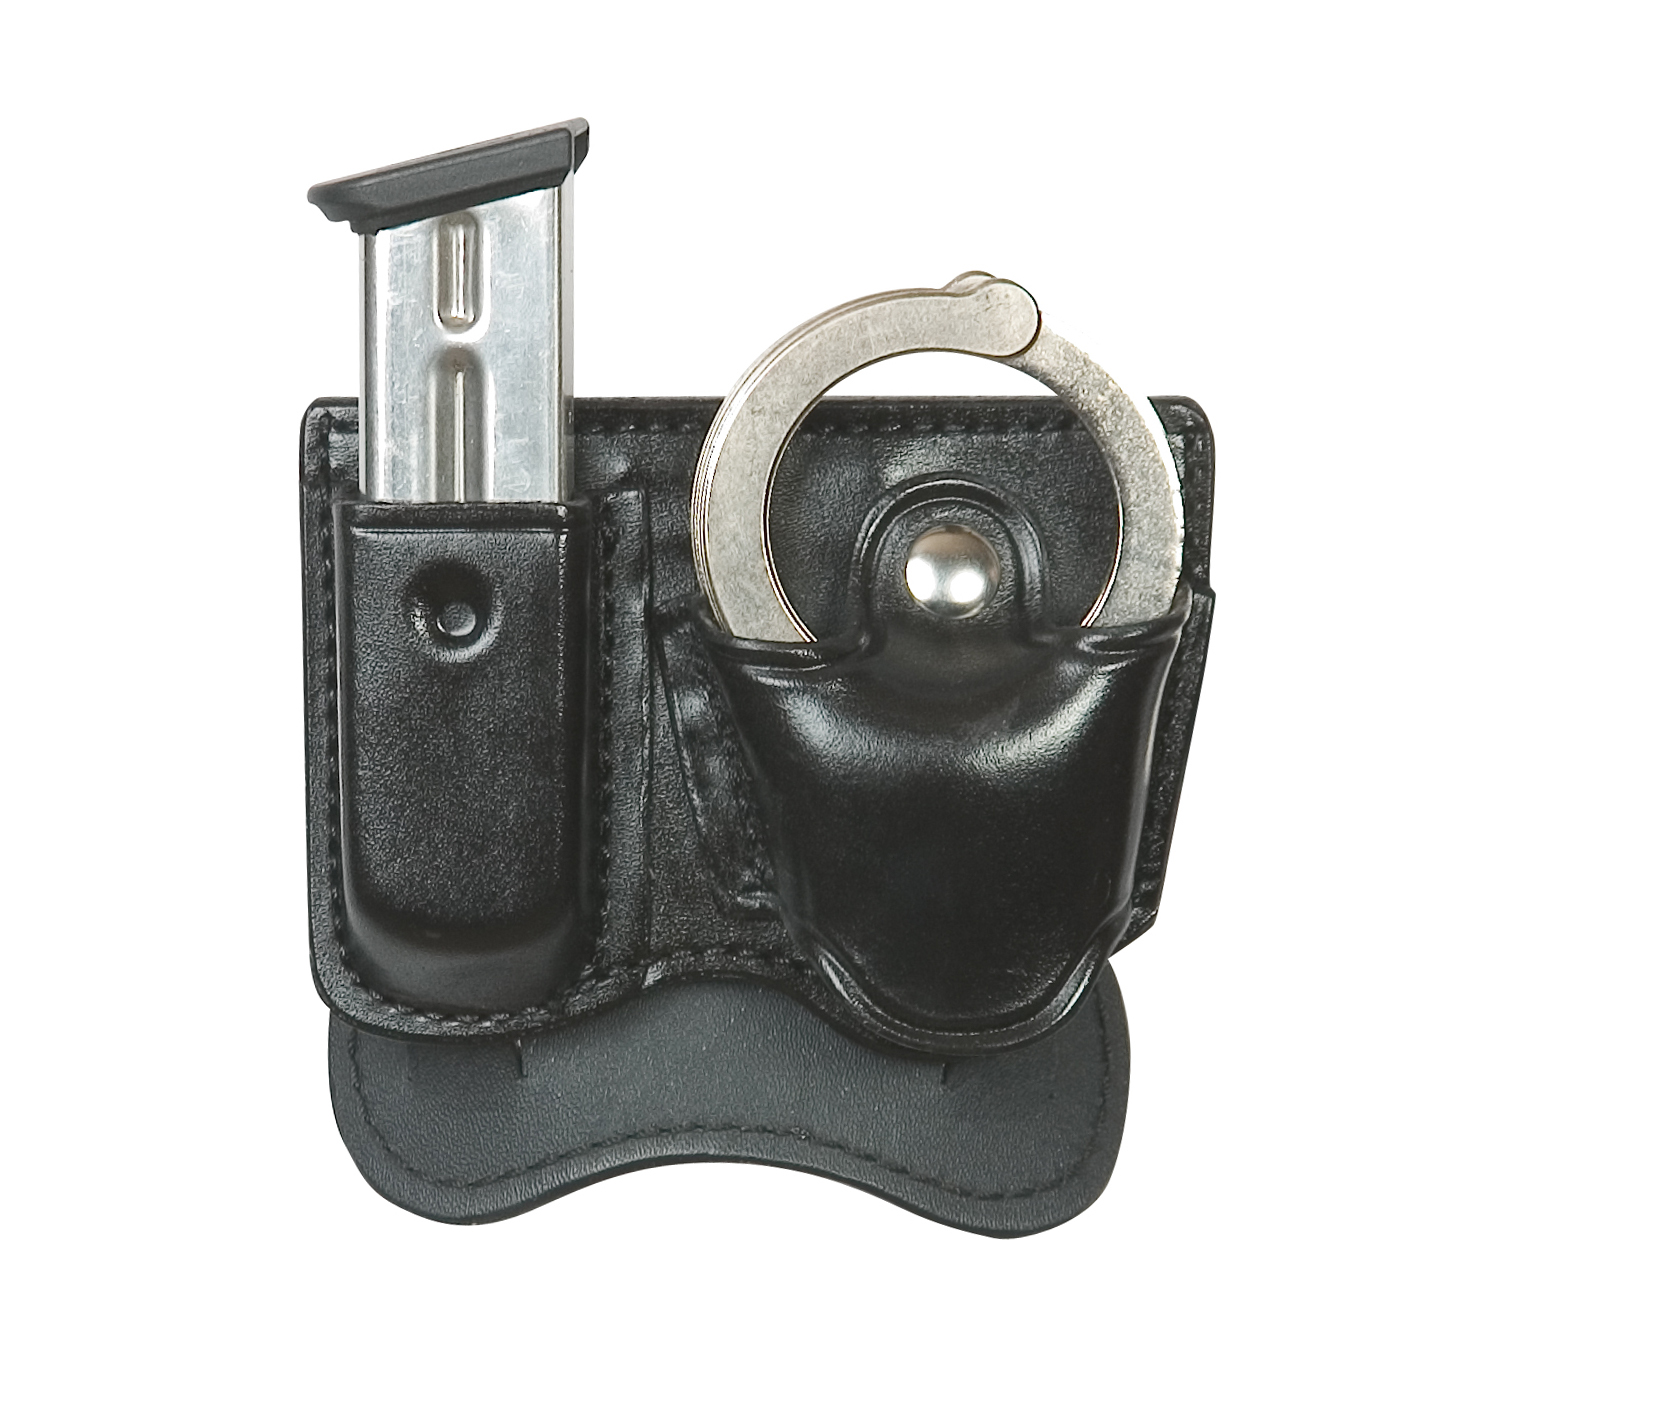 D425A M/C-PADDLE STYLE-MAGAZINE/HANDCUFF HOLDER